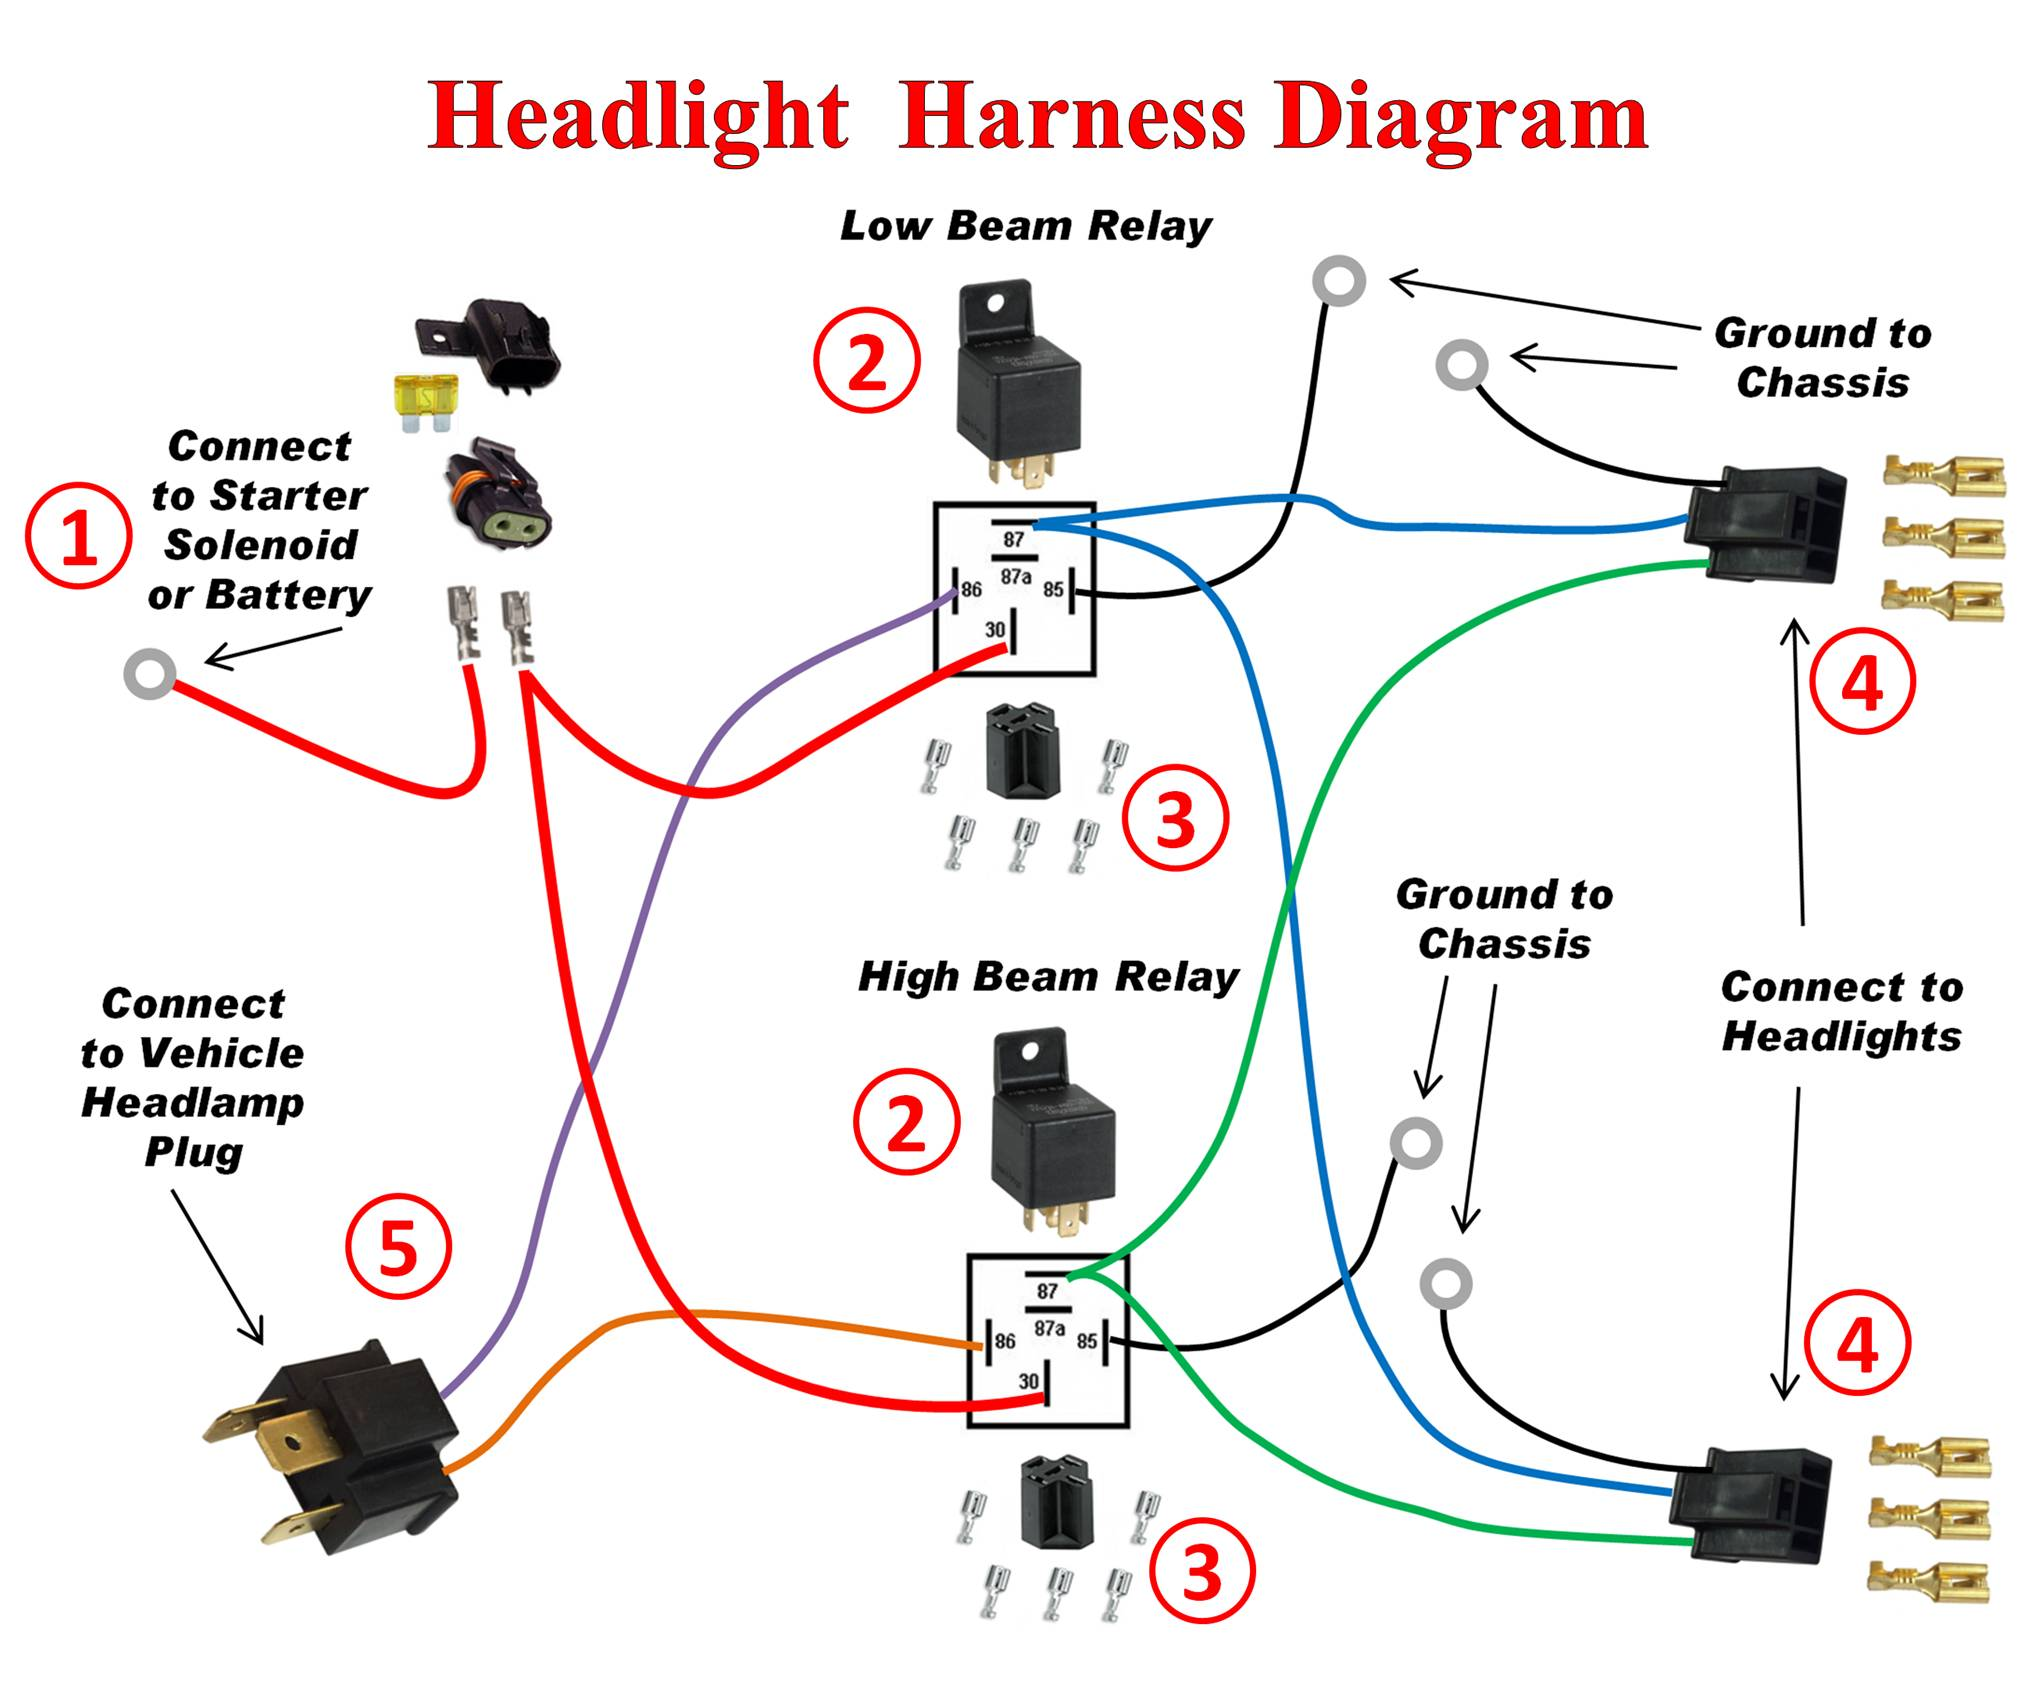 89 jeep cherokee headlight wiring diagram h4 wiring diagram jeep cherokee wiring diagram data  h4 wiring diagram jeep cherokee